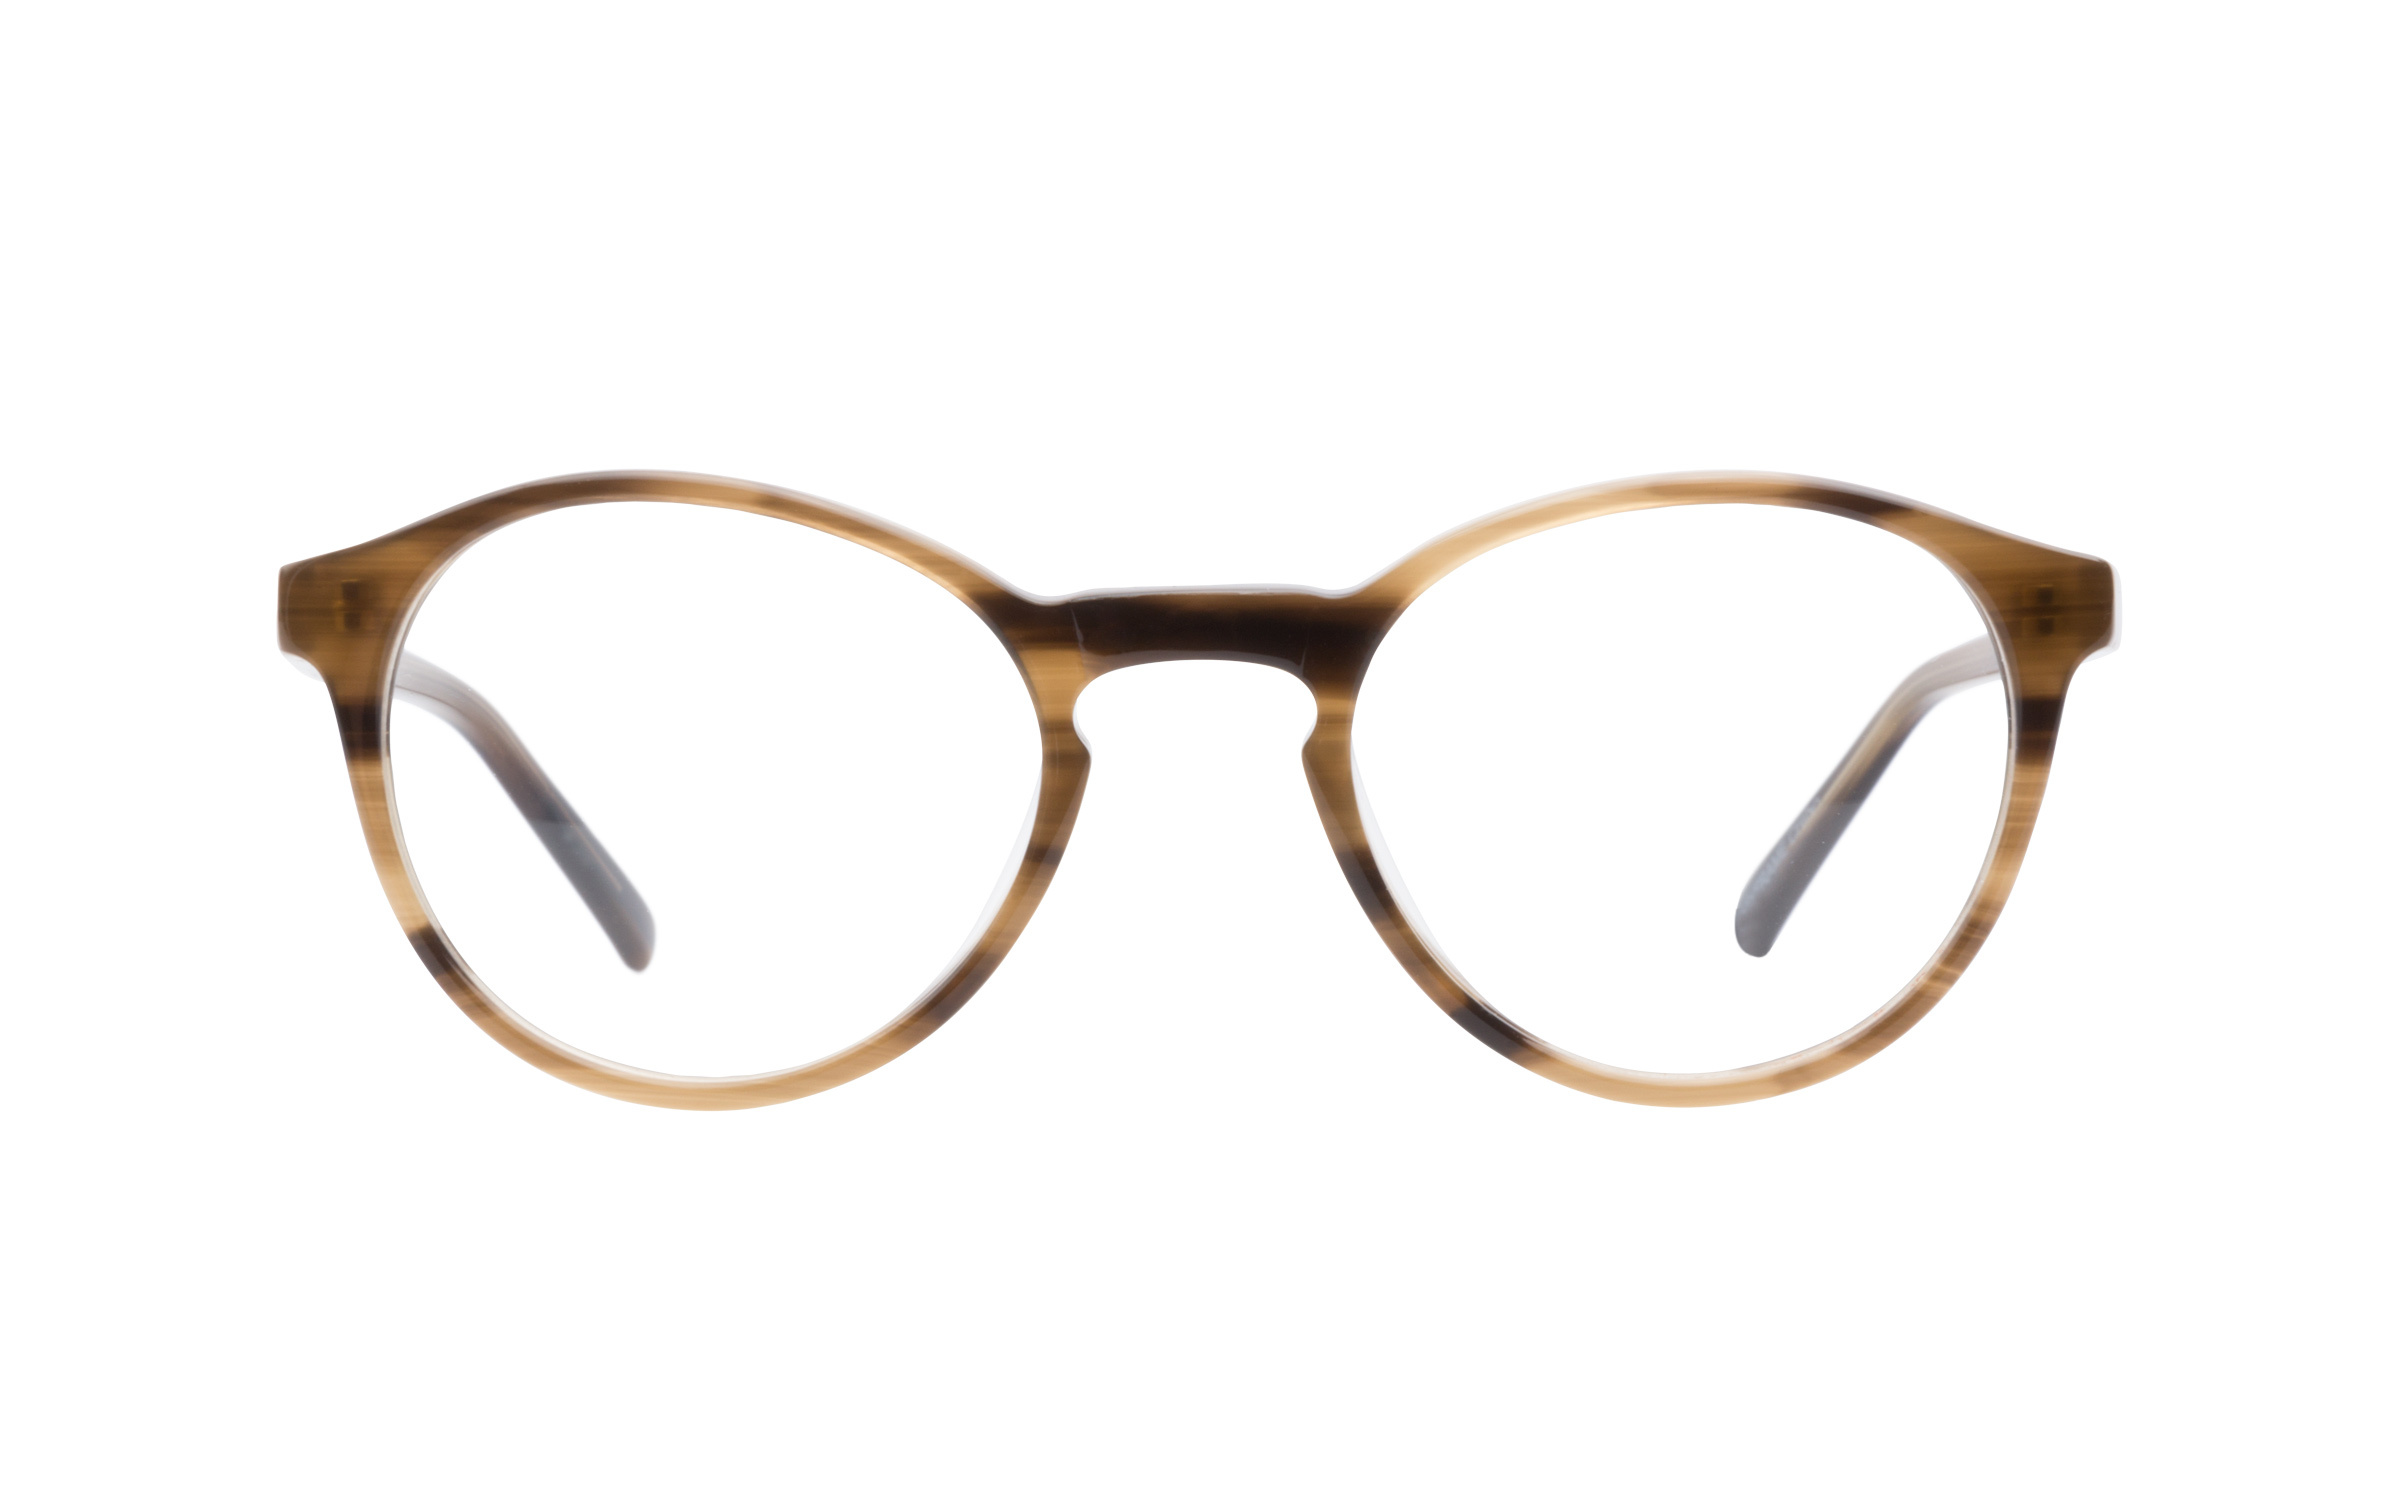 7 For All Mankind 753 Brown Horn eyeglasses are modern with a vintage appeal. This round acetate frame has a semi-transparent brown horn finish and a classic keyhole bridge cutout. The temples are kept bare and minimalistic with a discreet engraving a 7 For All Mankind logo at the tips.